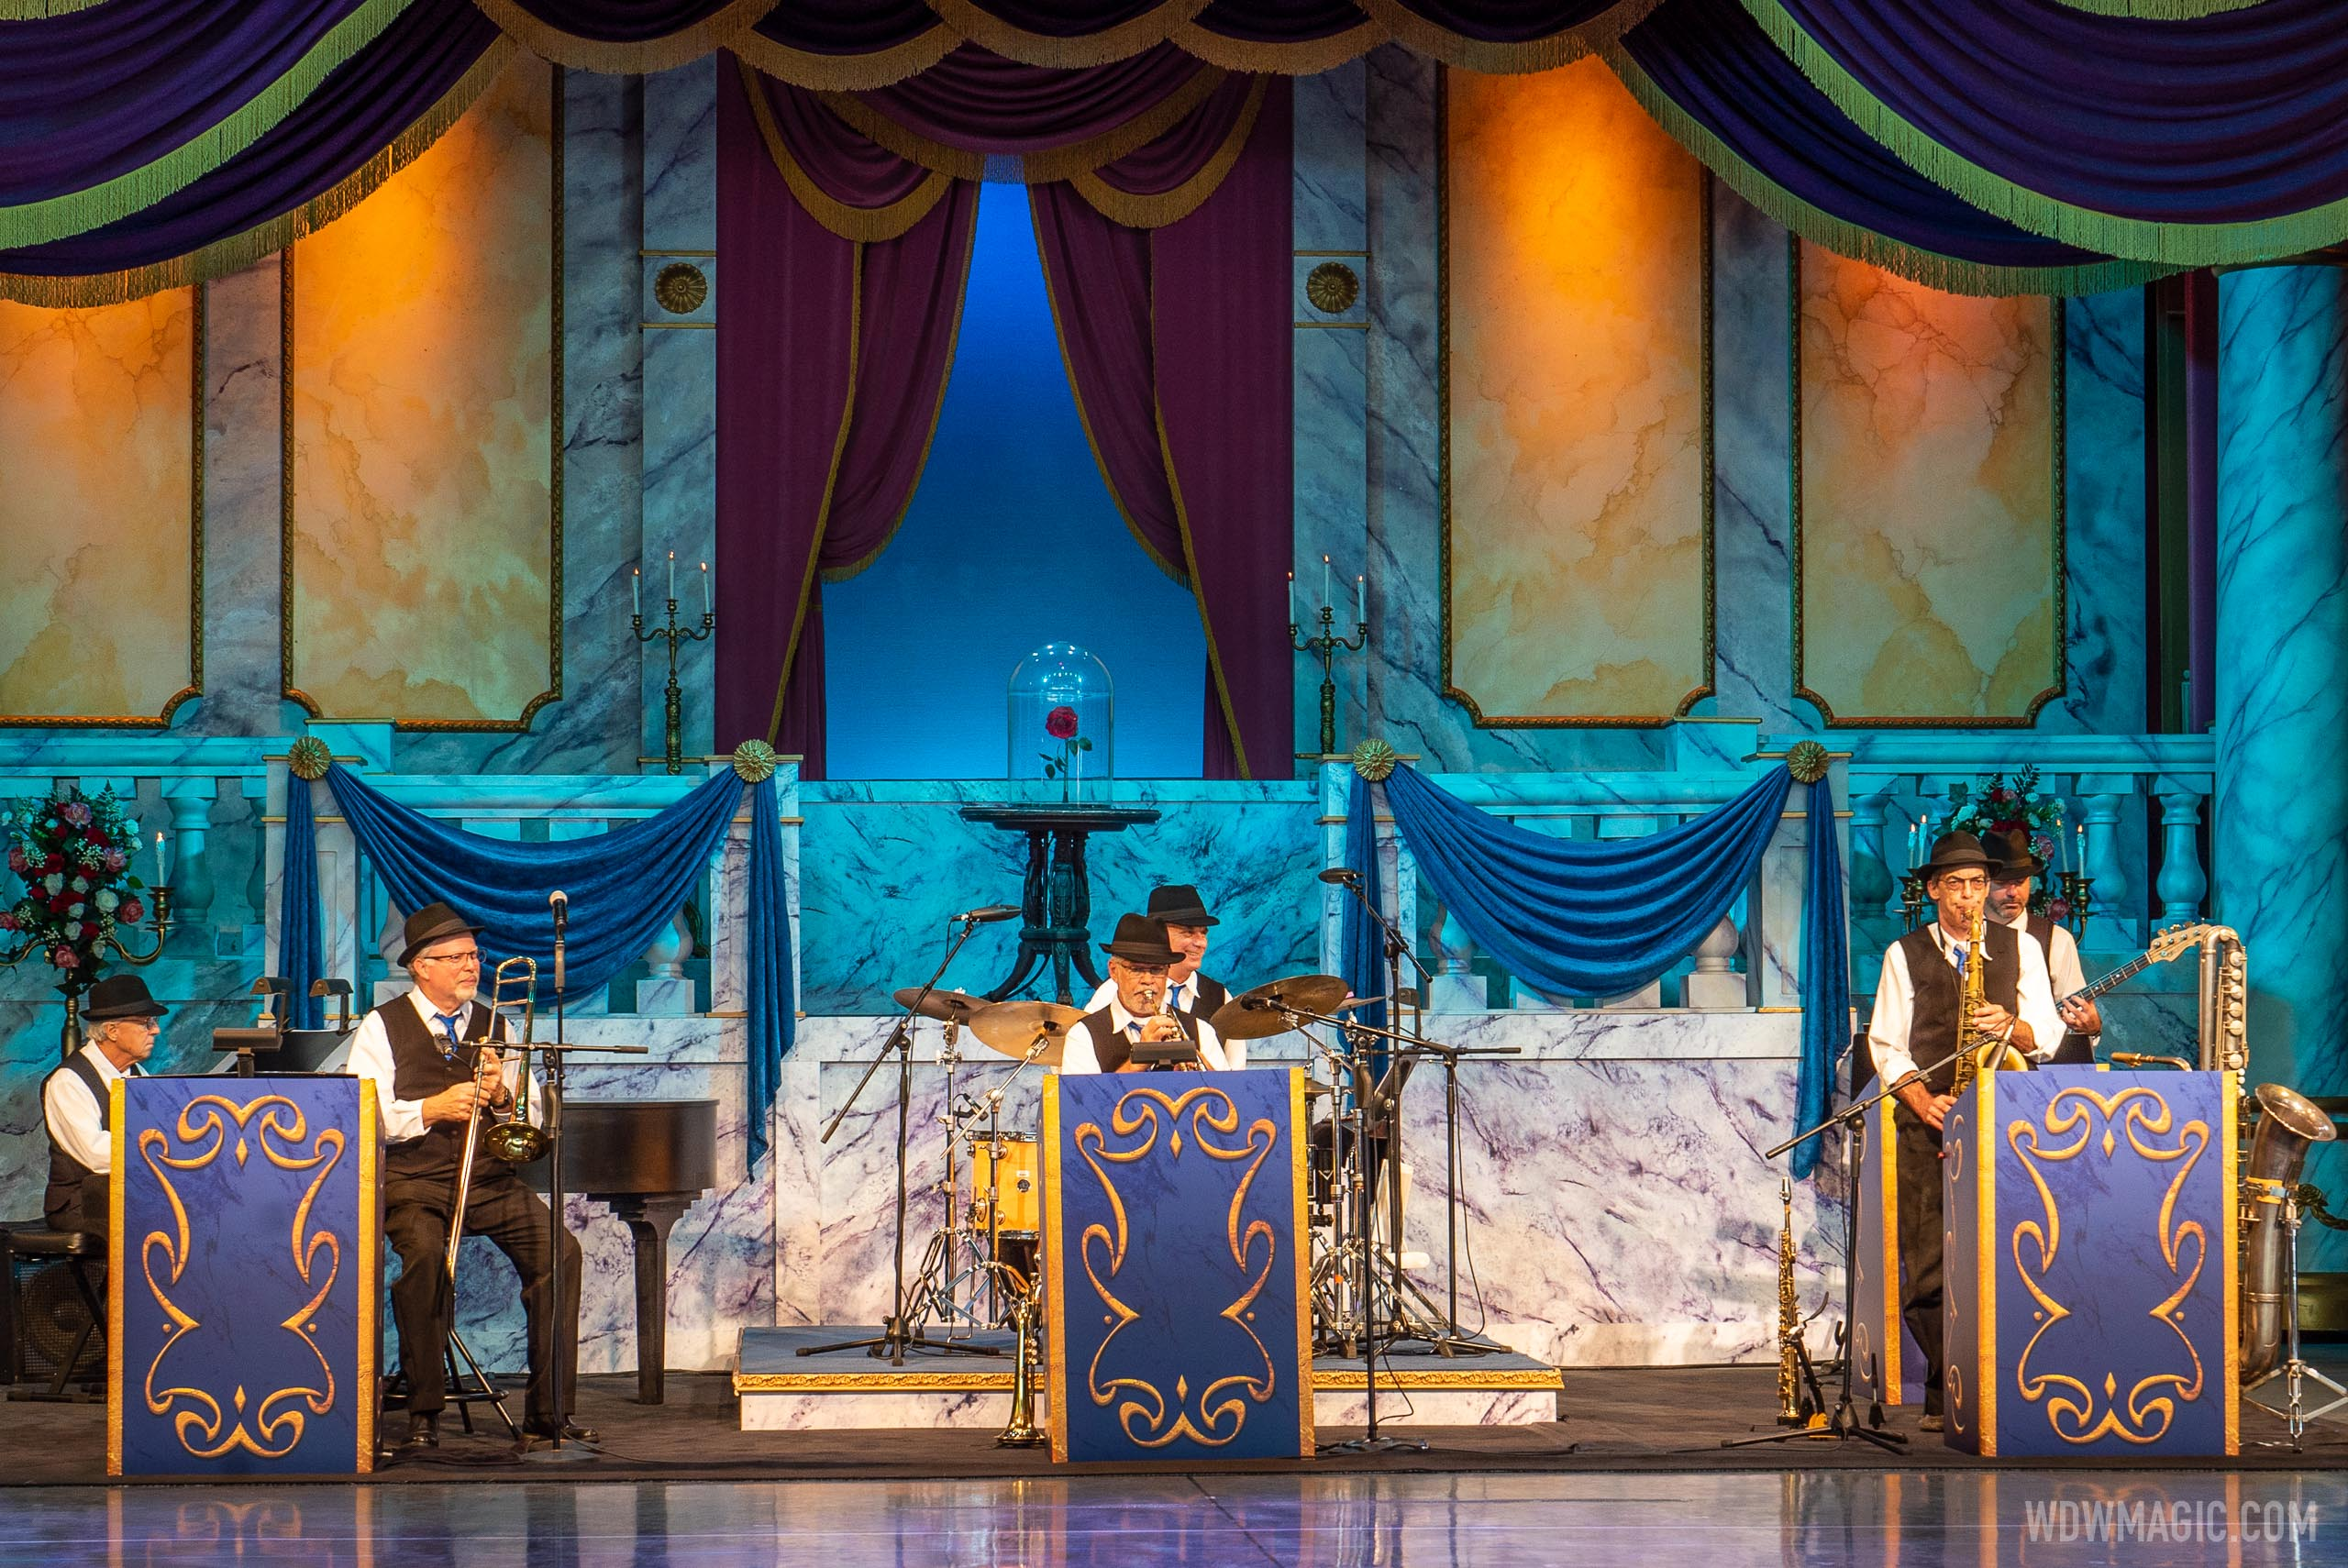 The Disney Society Orchestra and Friends overview